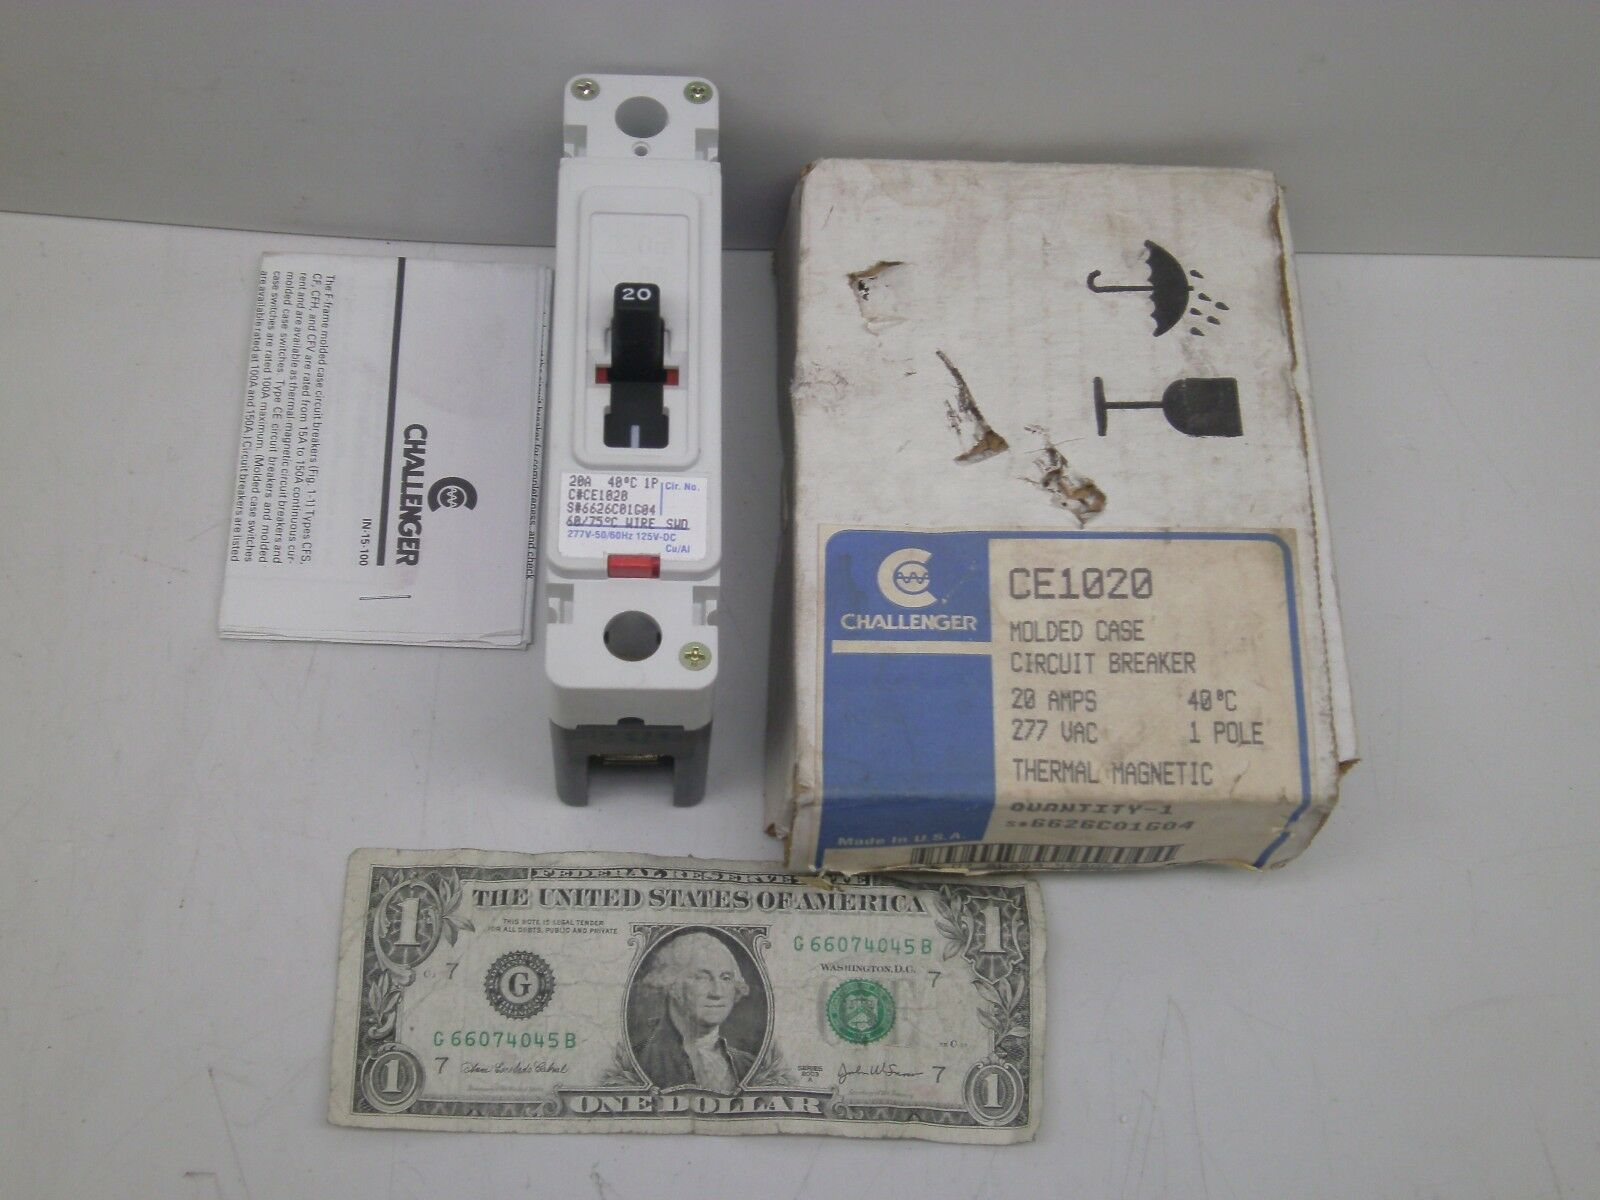 Challenger 1 Pole 20 Amp Ce1020 Circuit Breaker Voltage Rating 277 Breakers Types Norton Secured Powered By Verisign